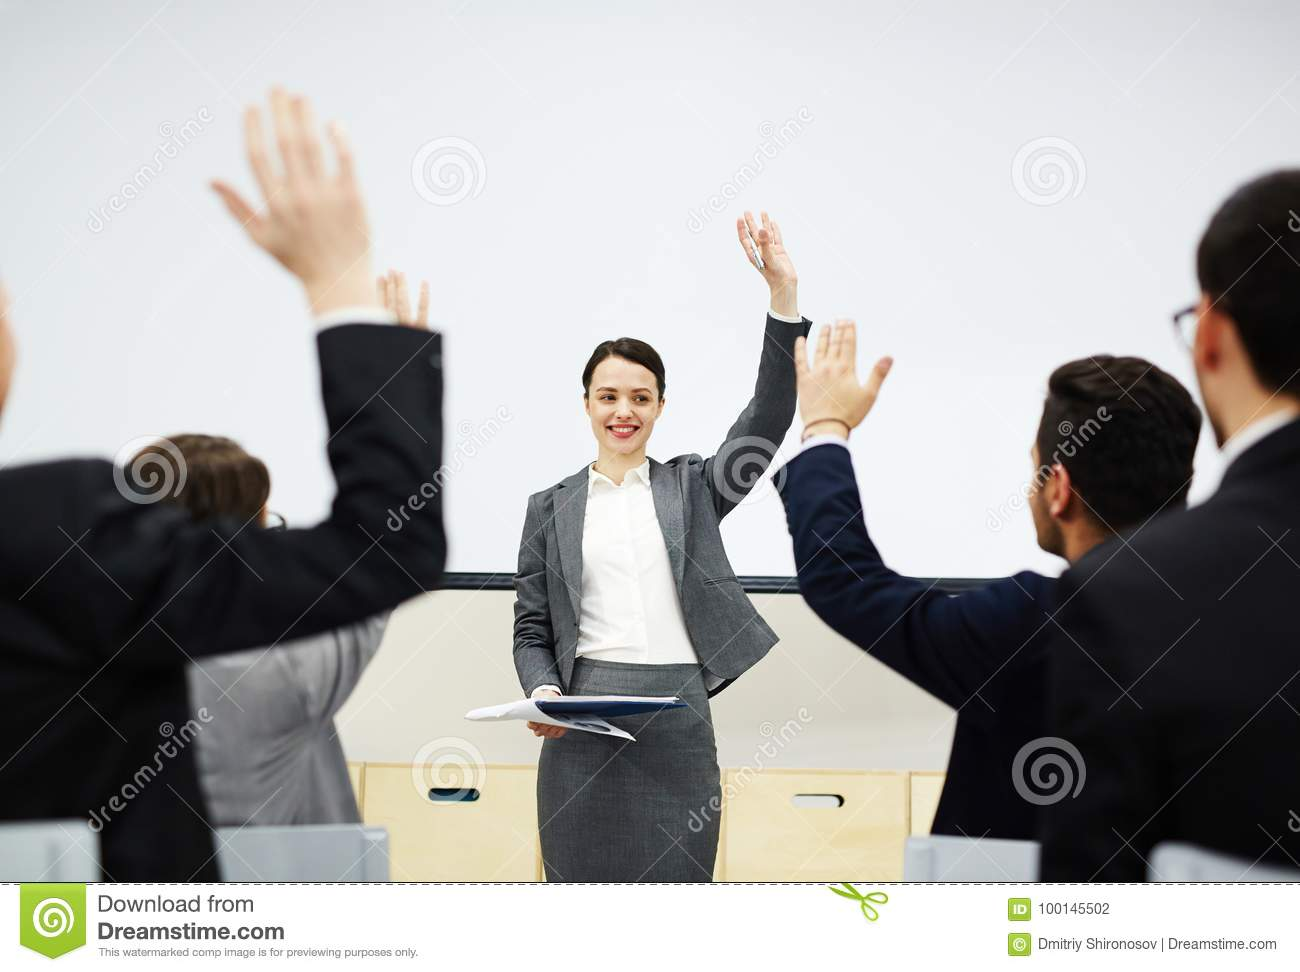 Raise Your Hand In Case You Agree Stock Photo